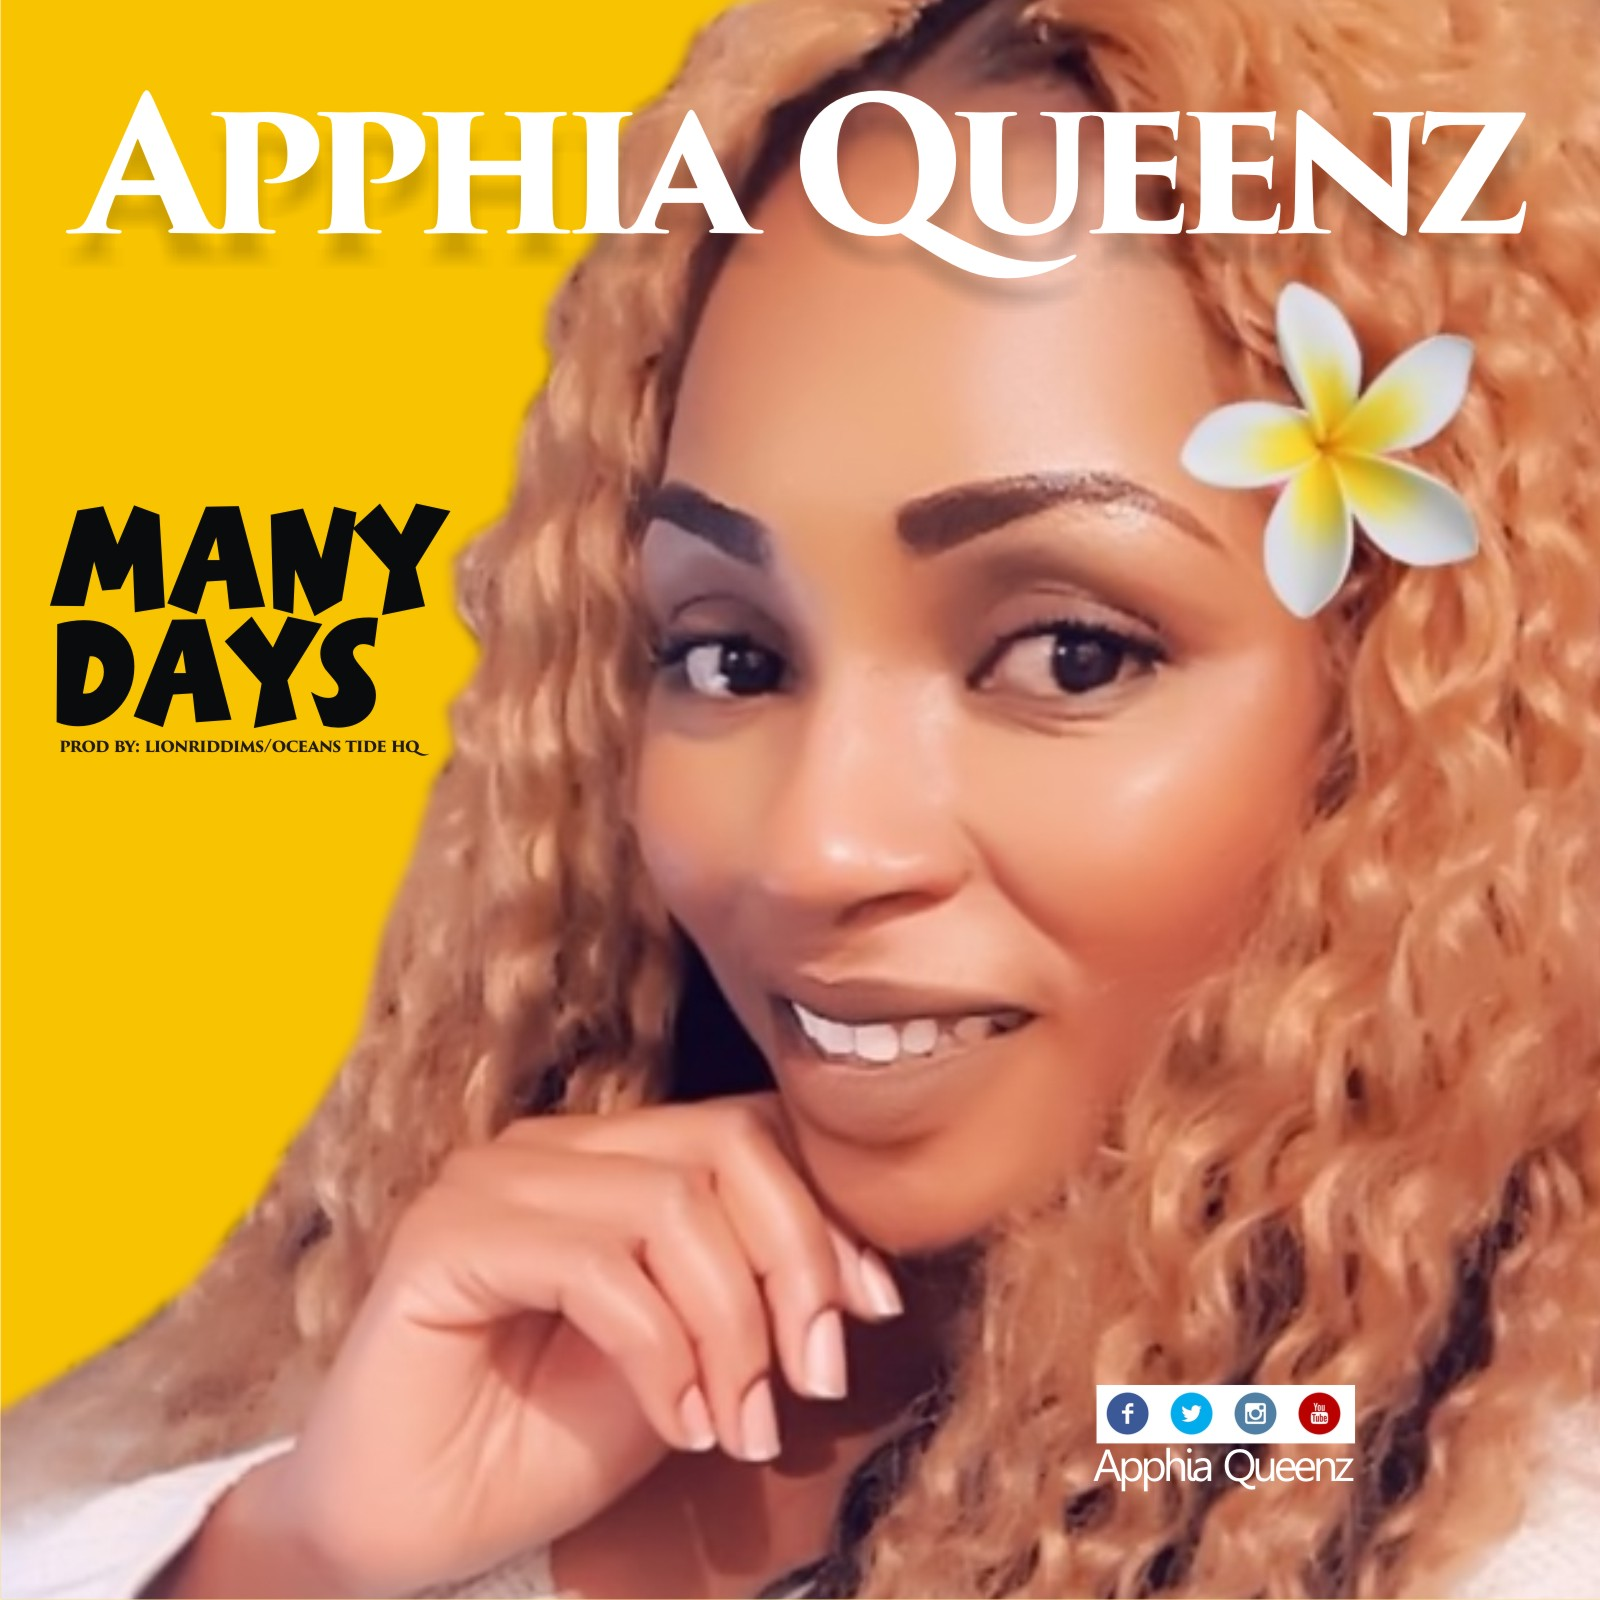 Many Days - Apphia Queenz. |@Apphia_queenz